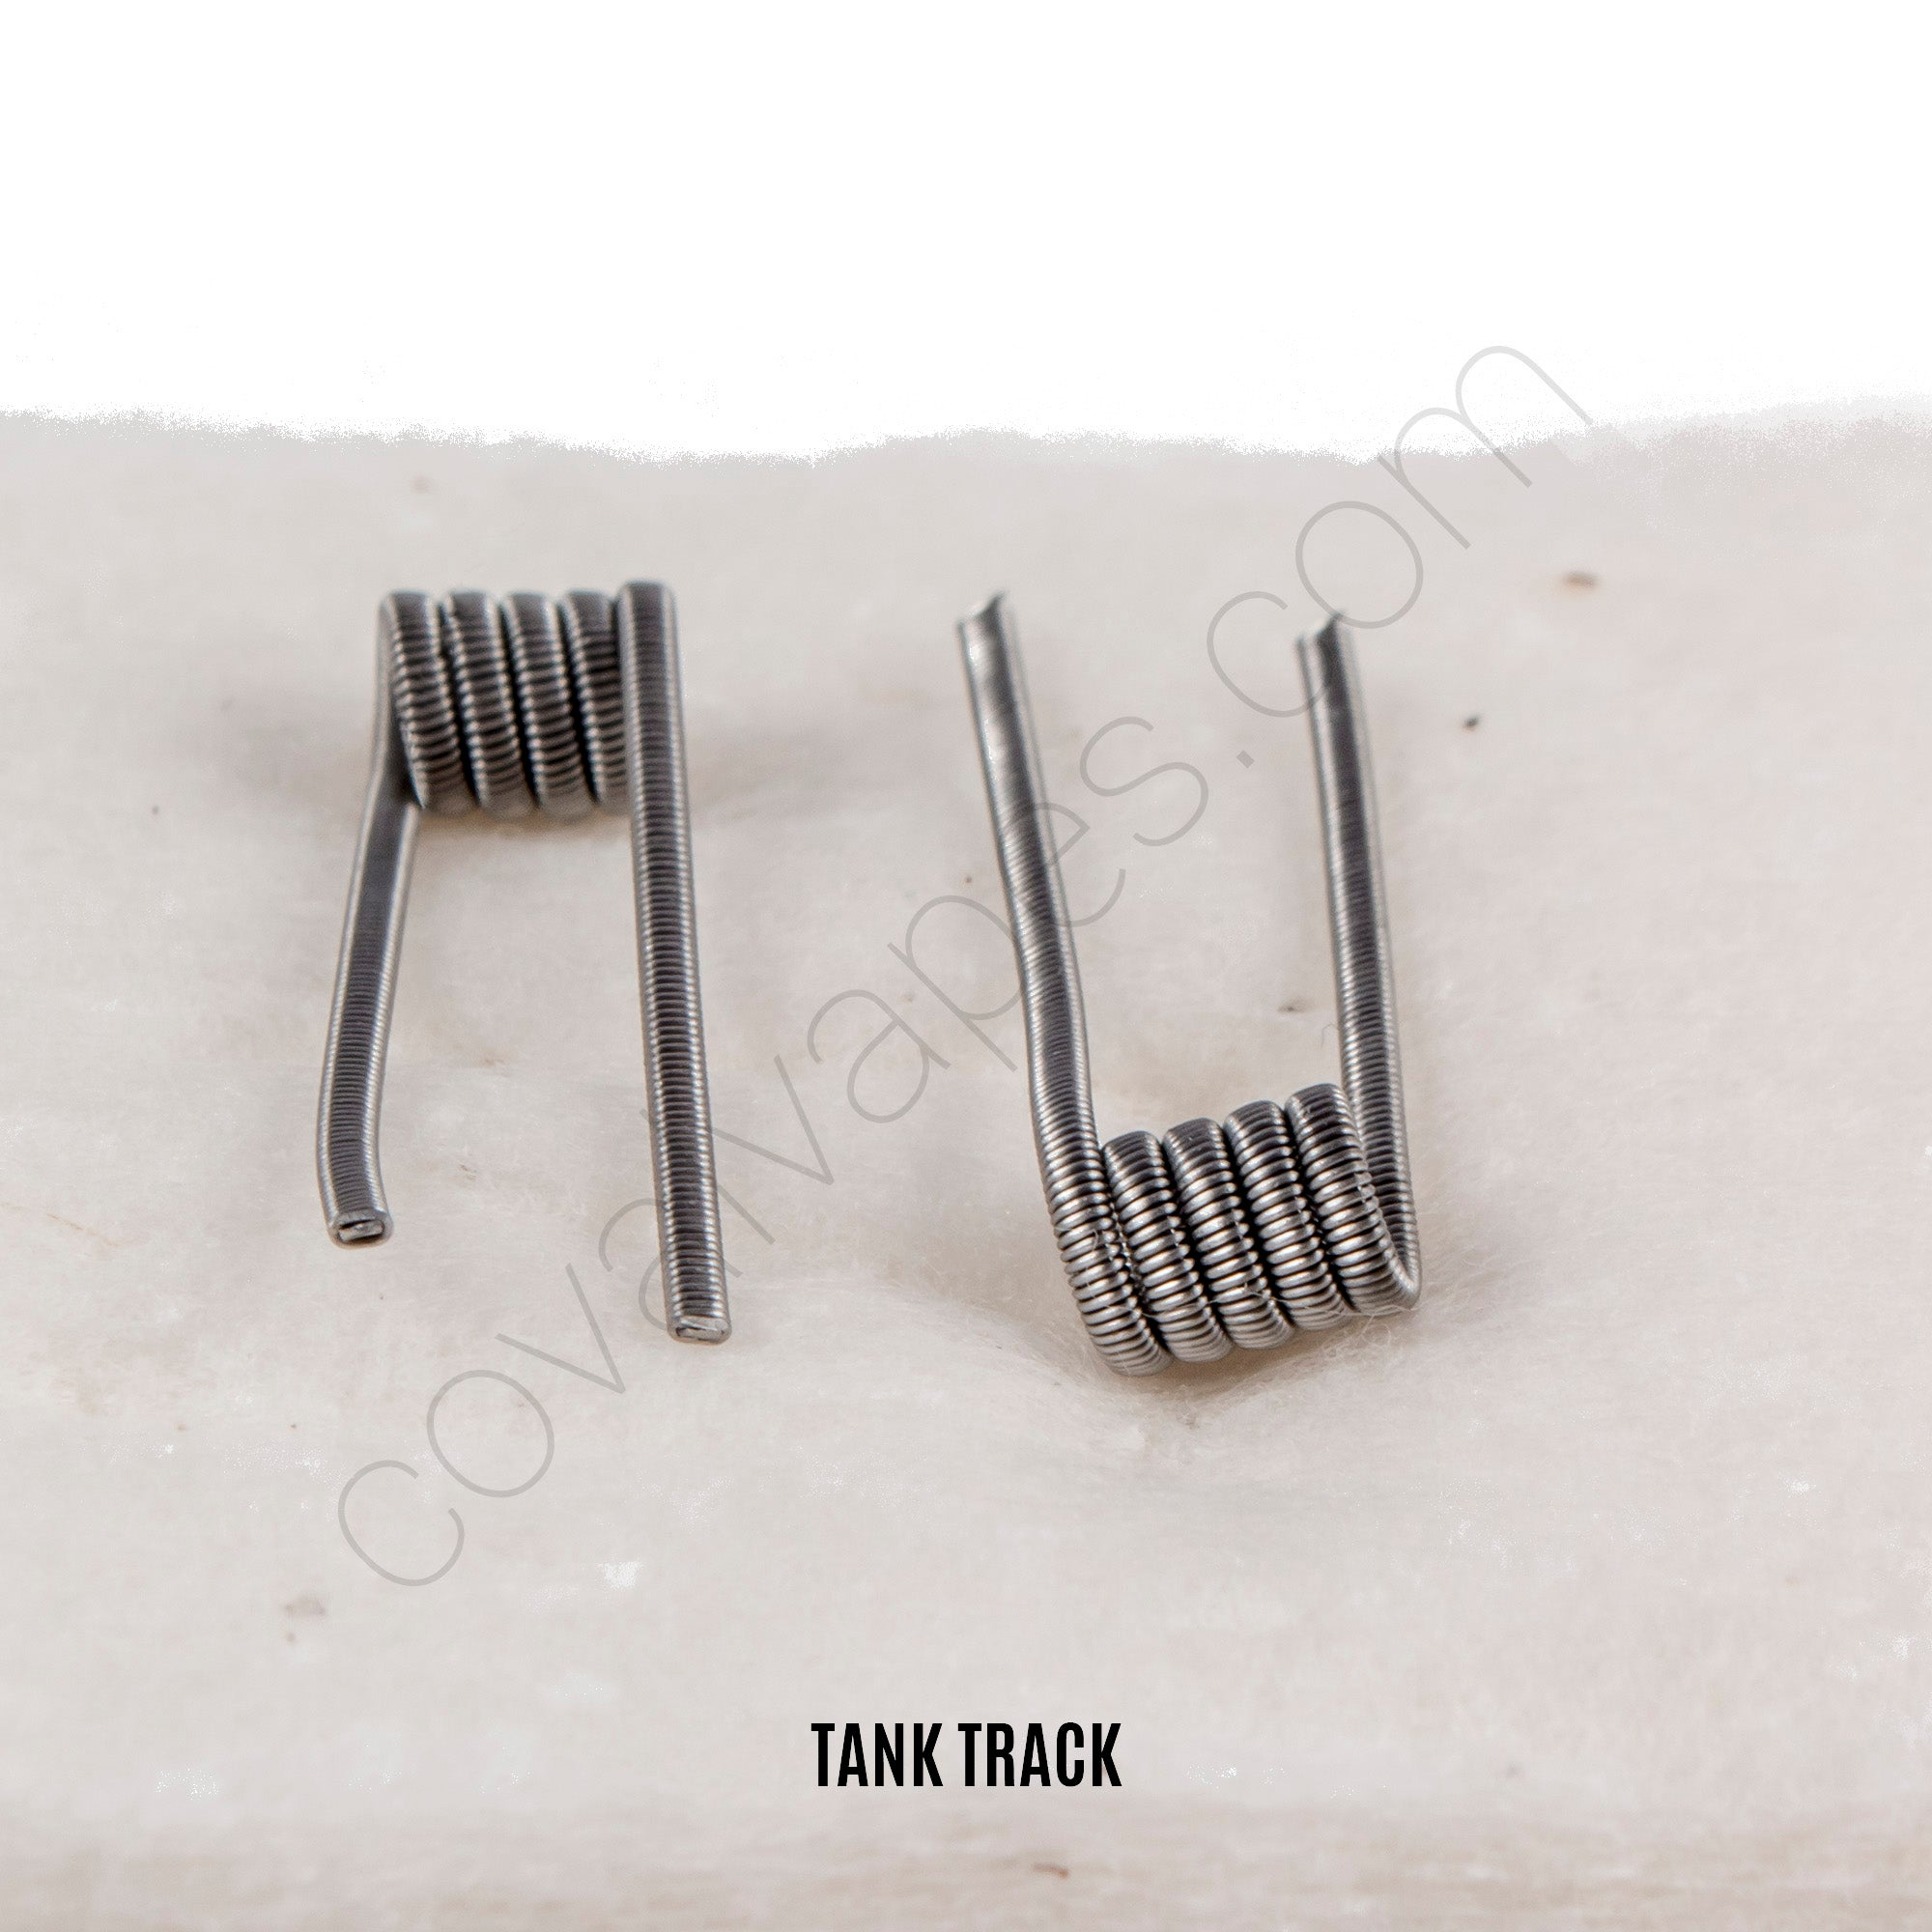 Medusa Pre-Built Coil (Open Box) - (2-Pack) & Mesh (5-Pack)